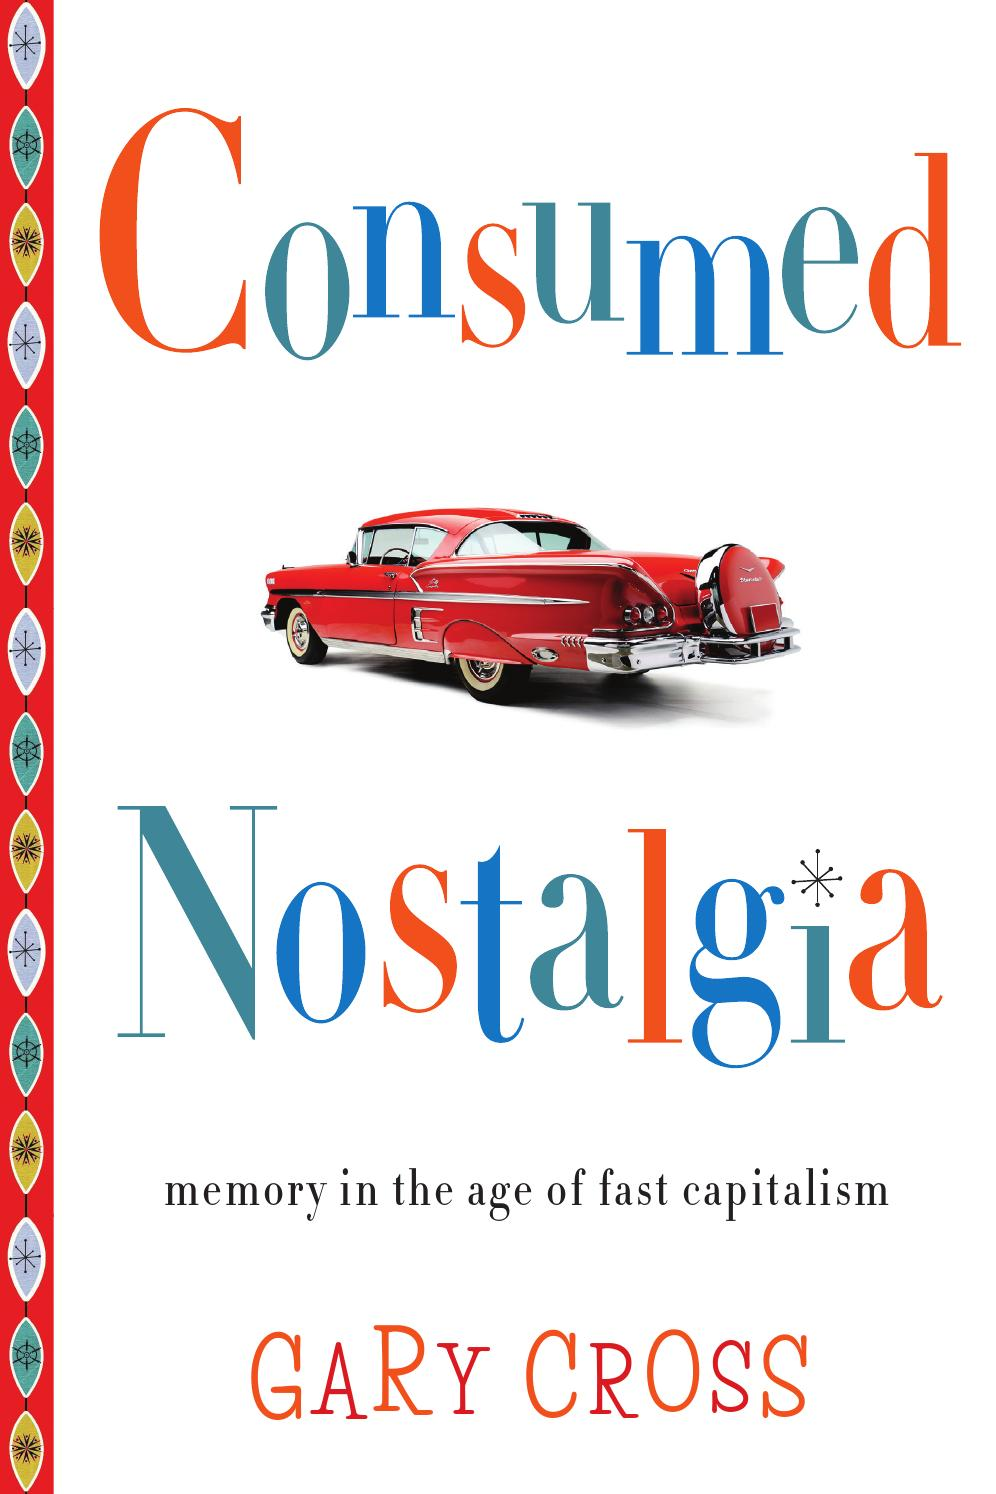 Consumed Nostalgia, By Gary Cross (Introduction) By Columbia